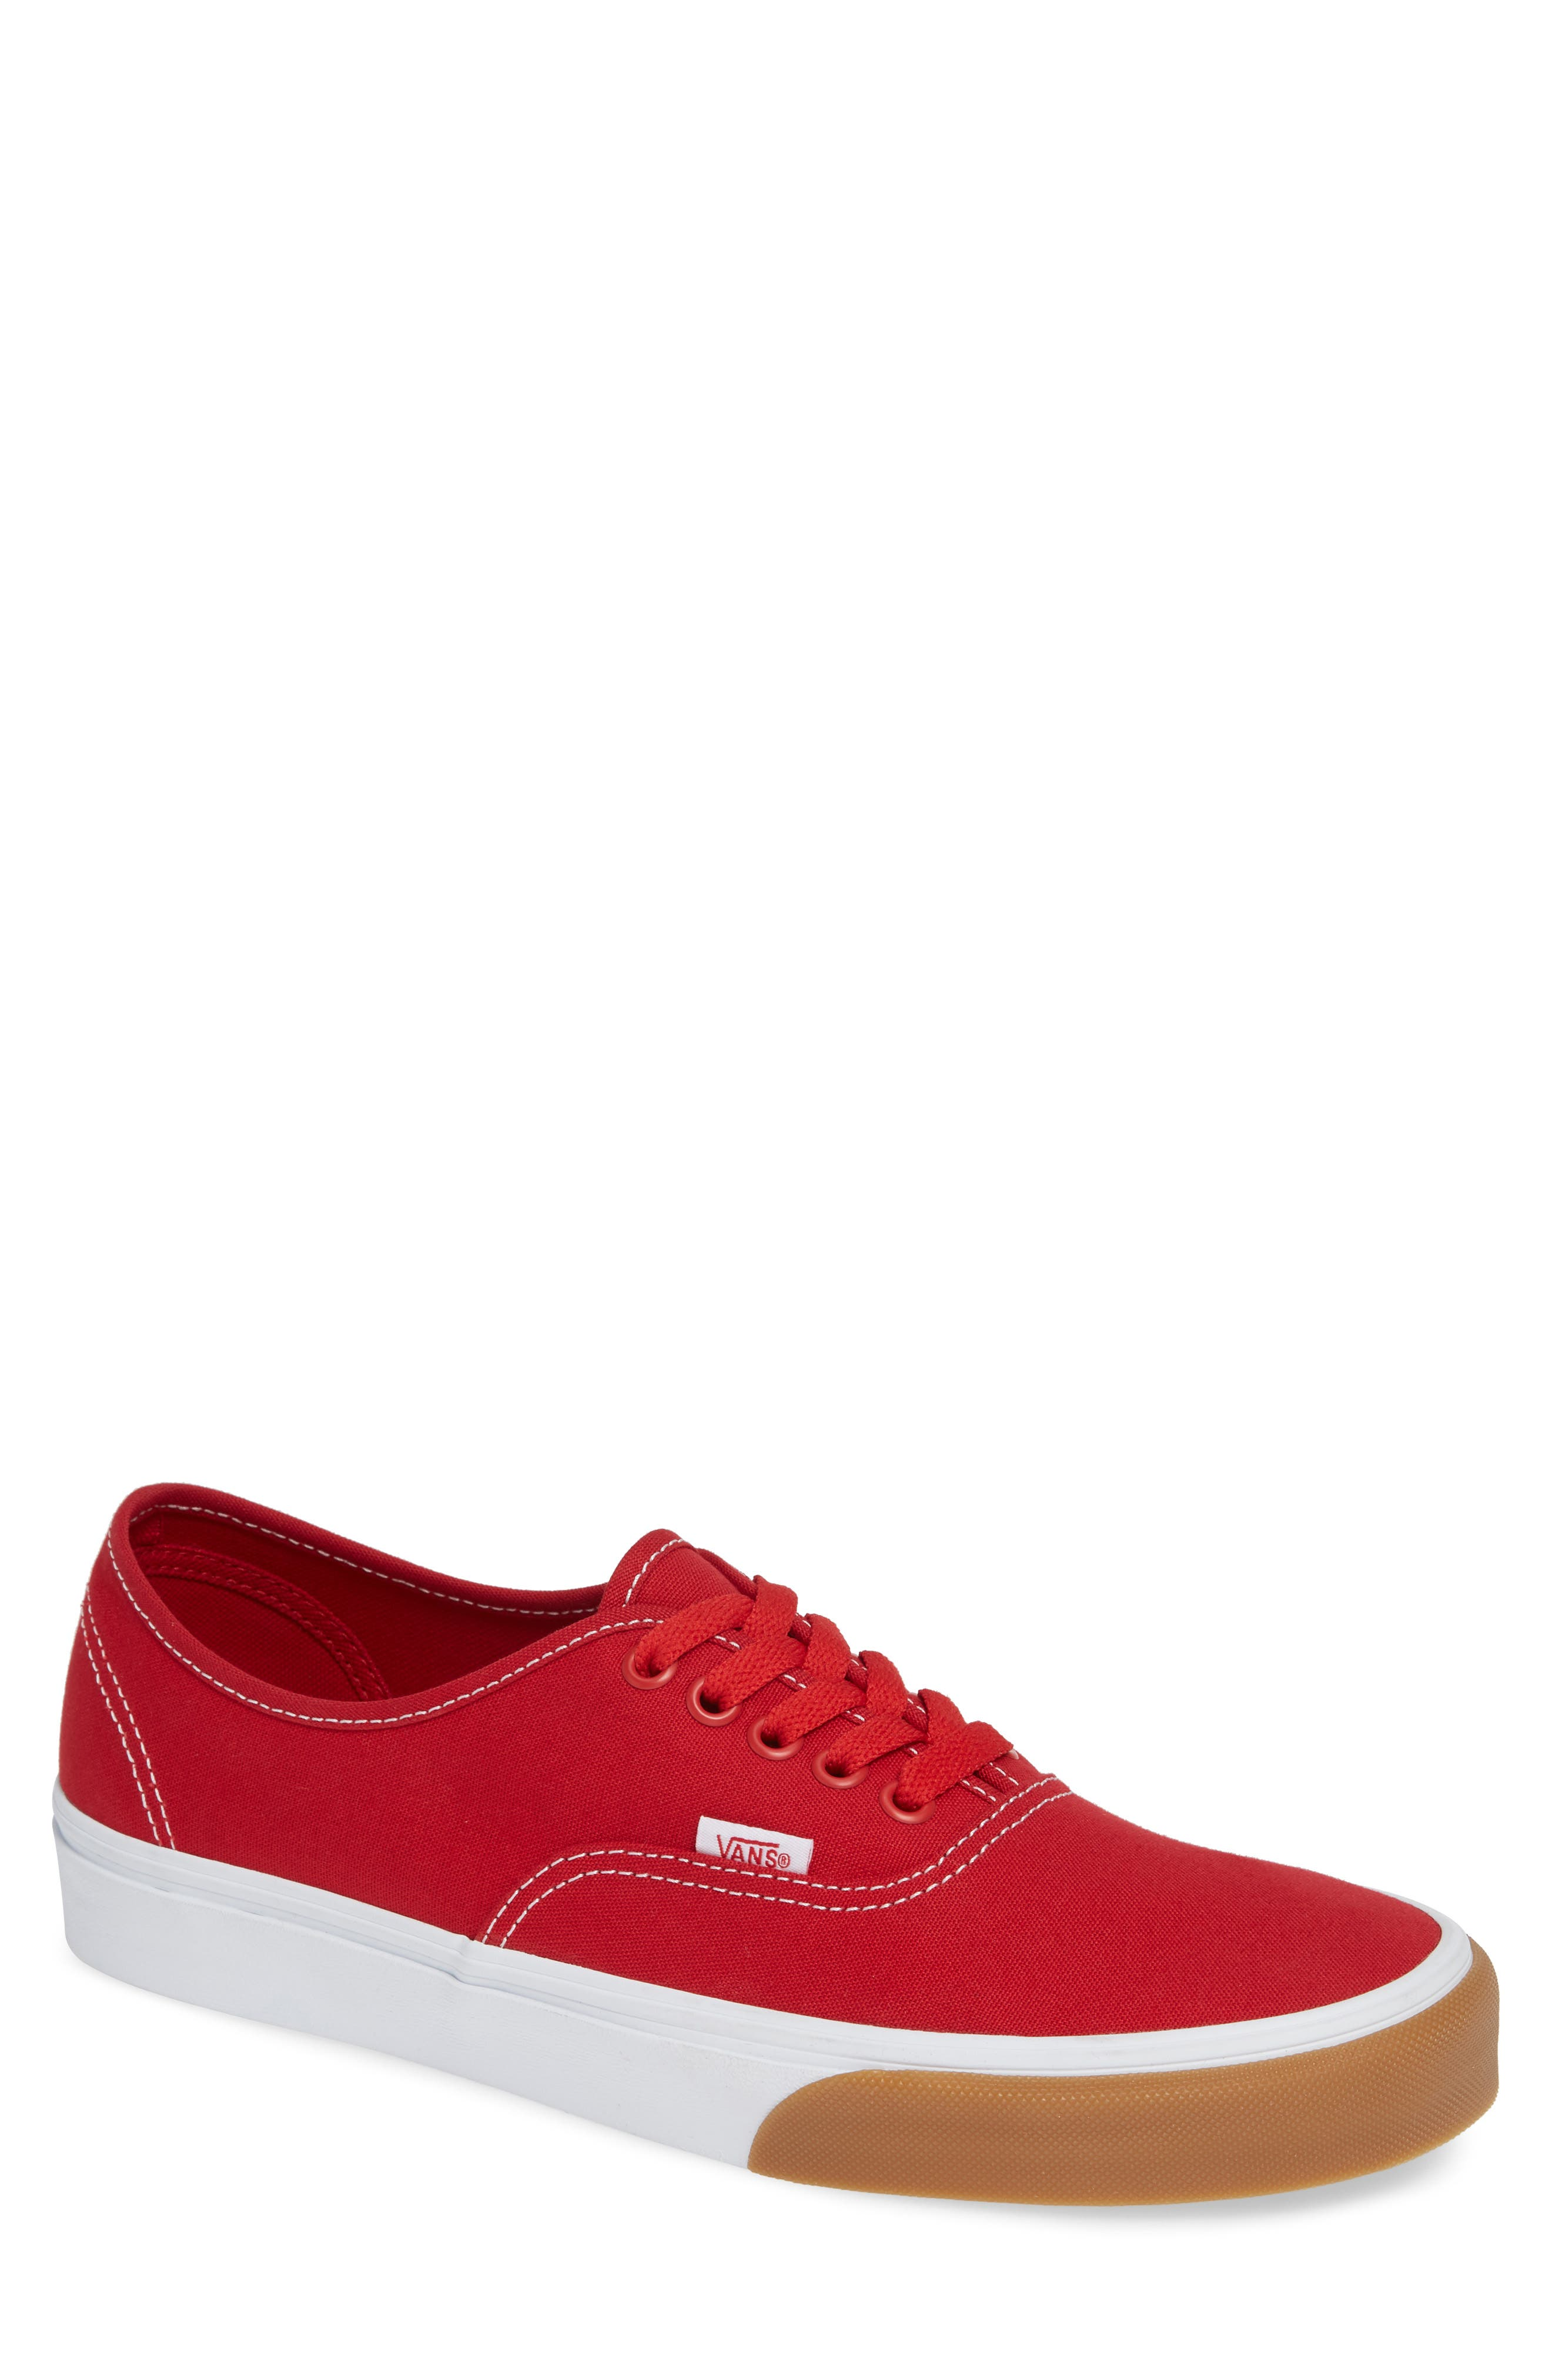 VANS,                             Authentic Gum Bumper Sneaker,                             Main thumbnail 1, color,                             RED/ TRUE WHITE